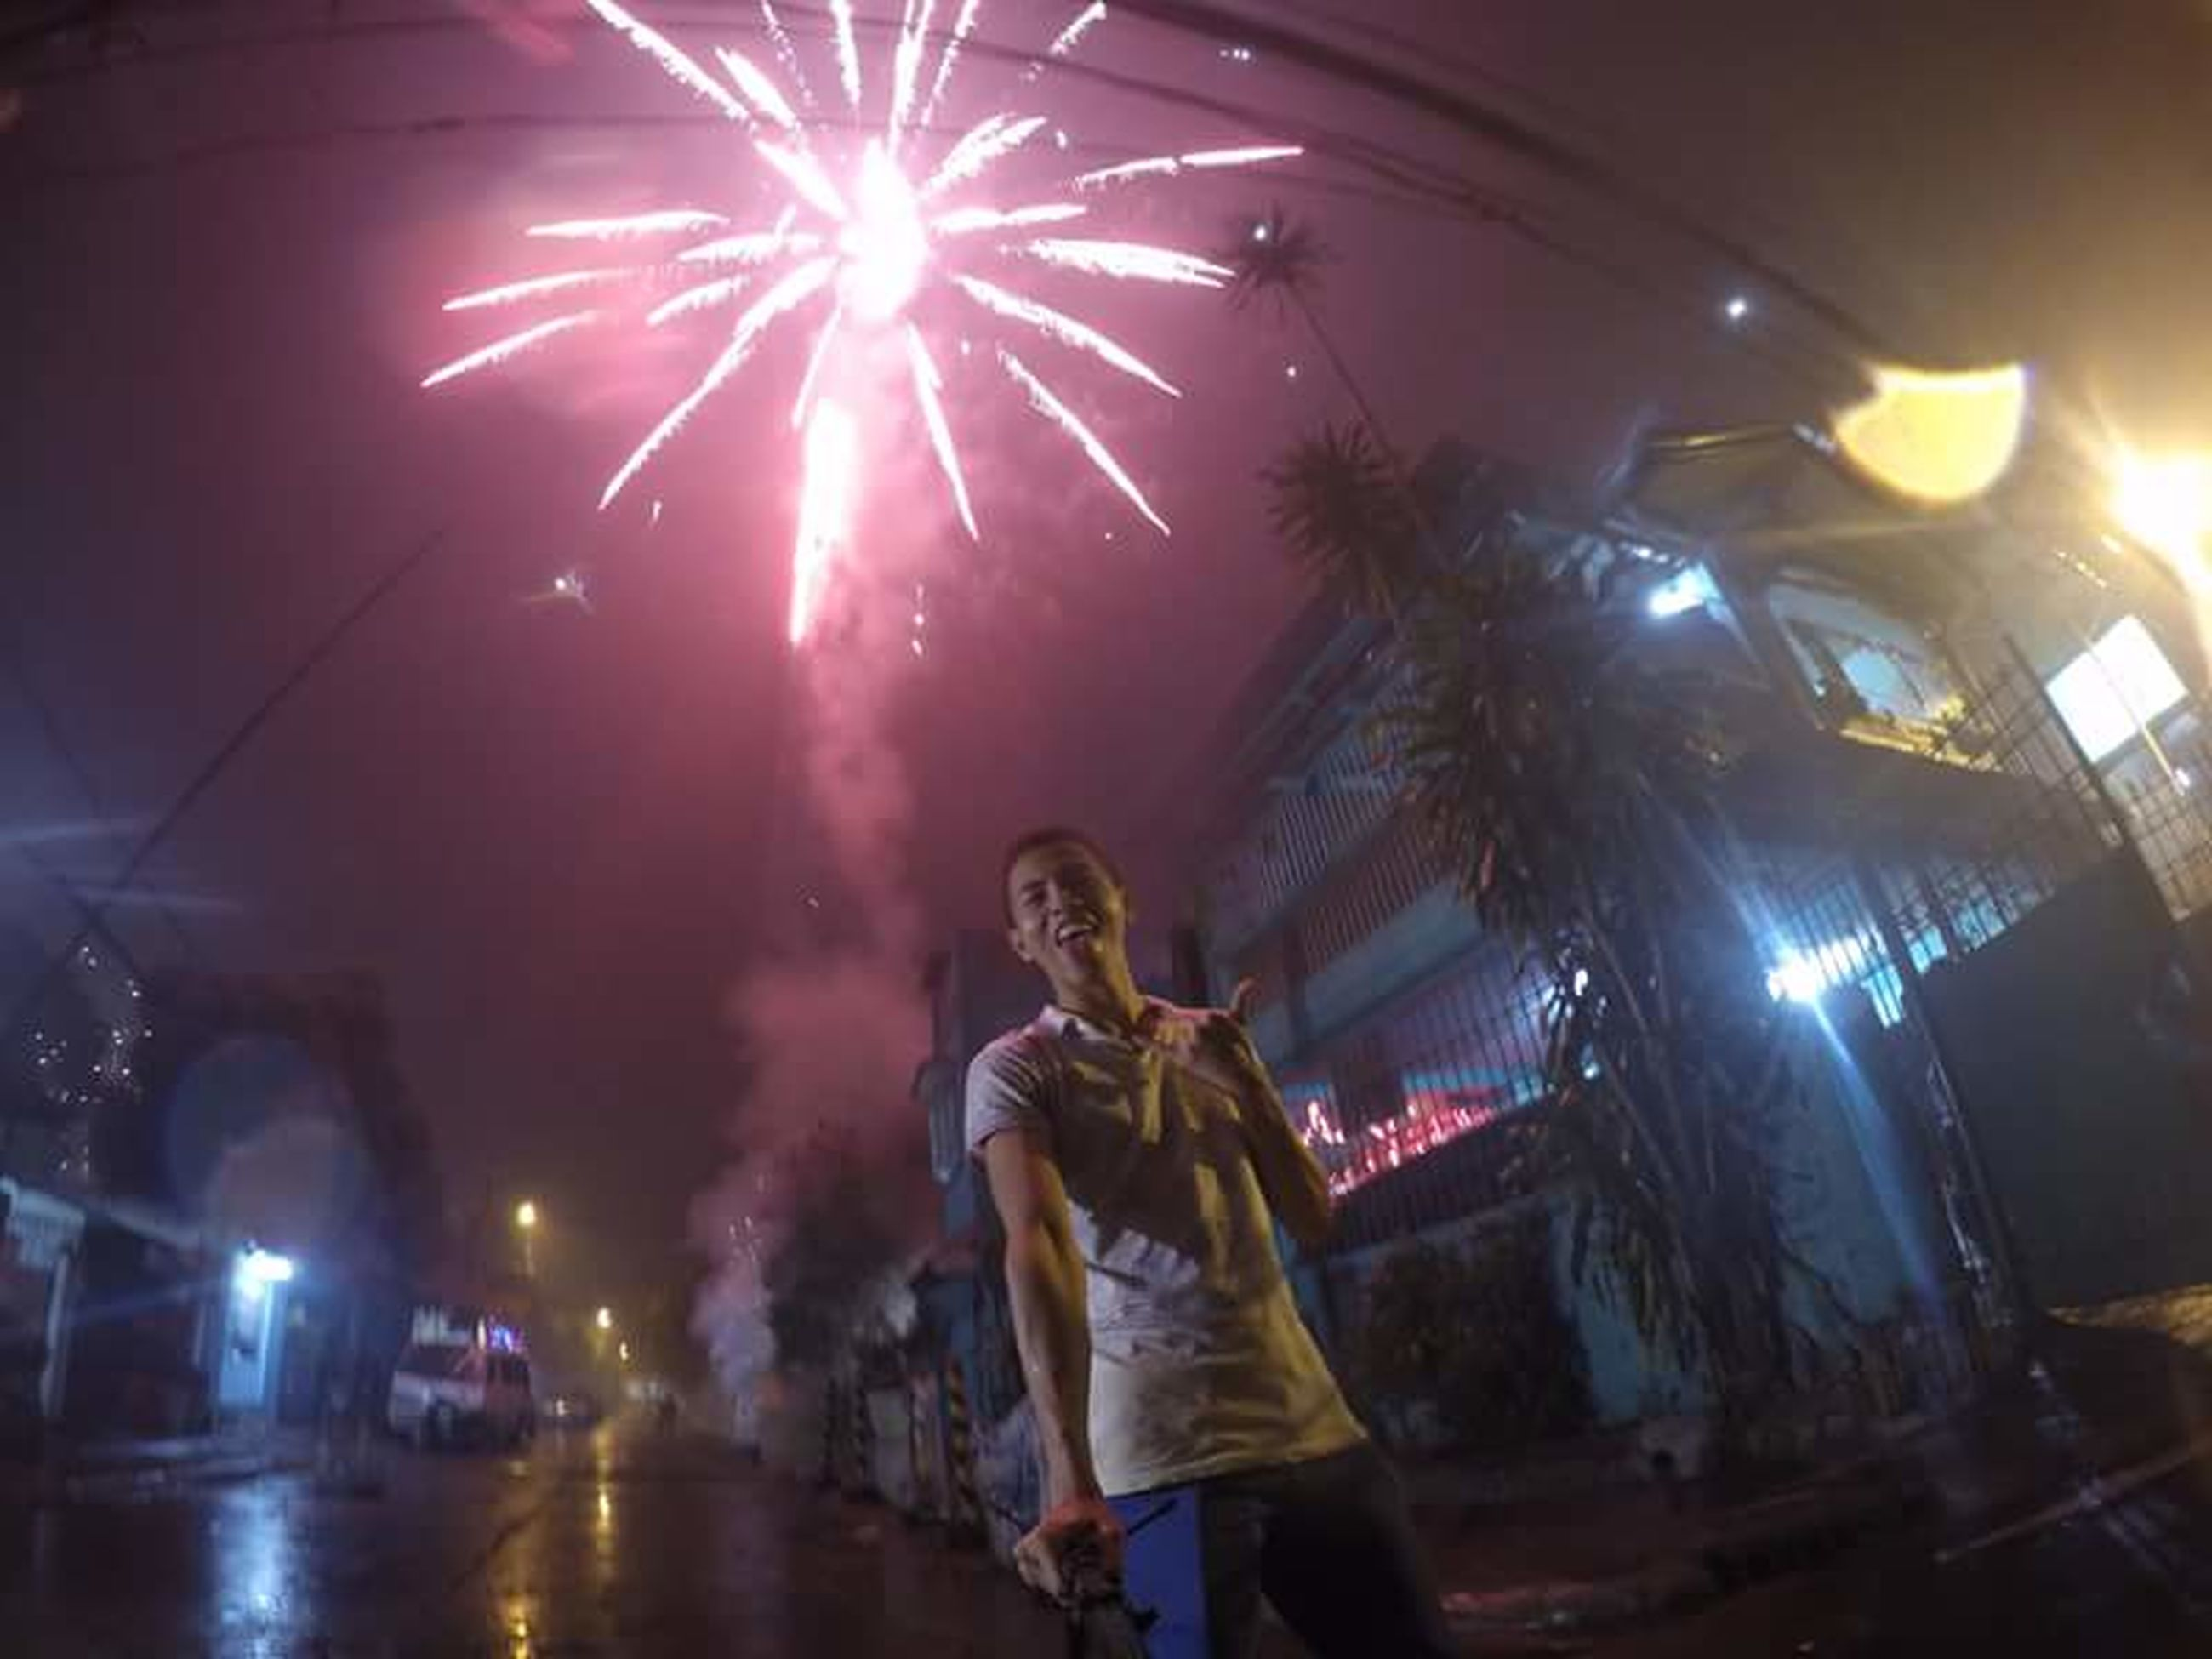 illuminated, night, celebration, firework display, arts culture and entertainment, exploding, event, firework - man made object, glowing, long exposure, motion, sparks, lighting equipment, low angle view, celebration event, blurred motion, lifestyles, men, building exterior